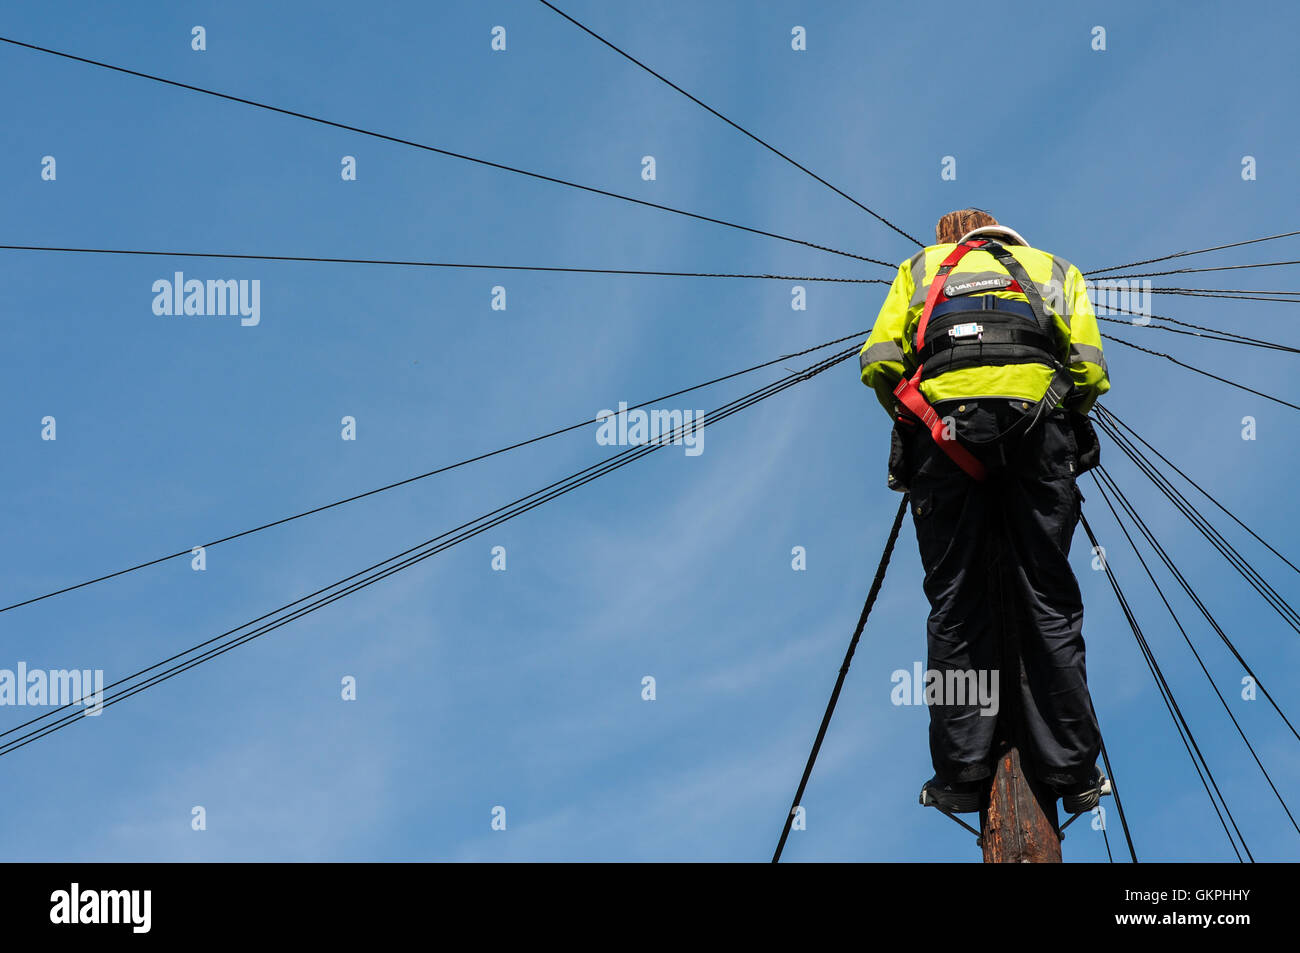 British telecoms engineer working on a telegraph pole in Bath city ...